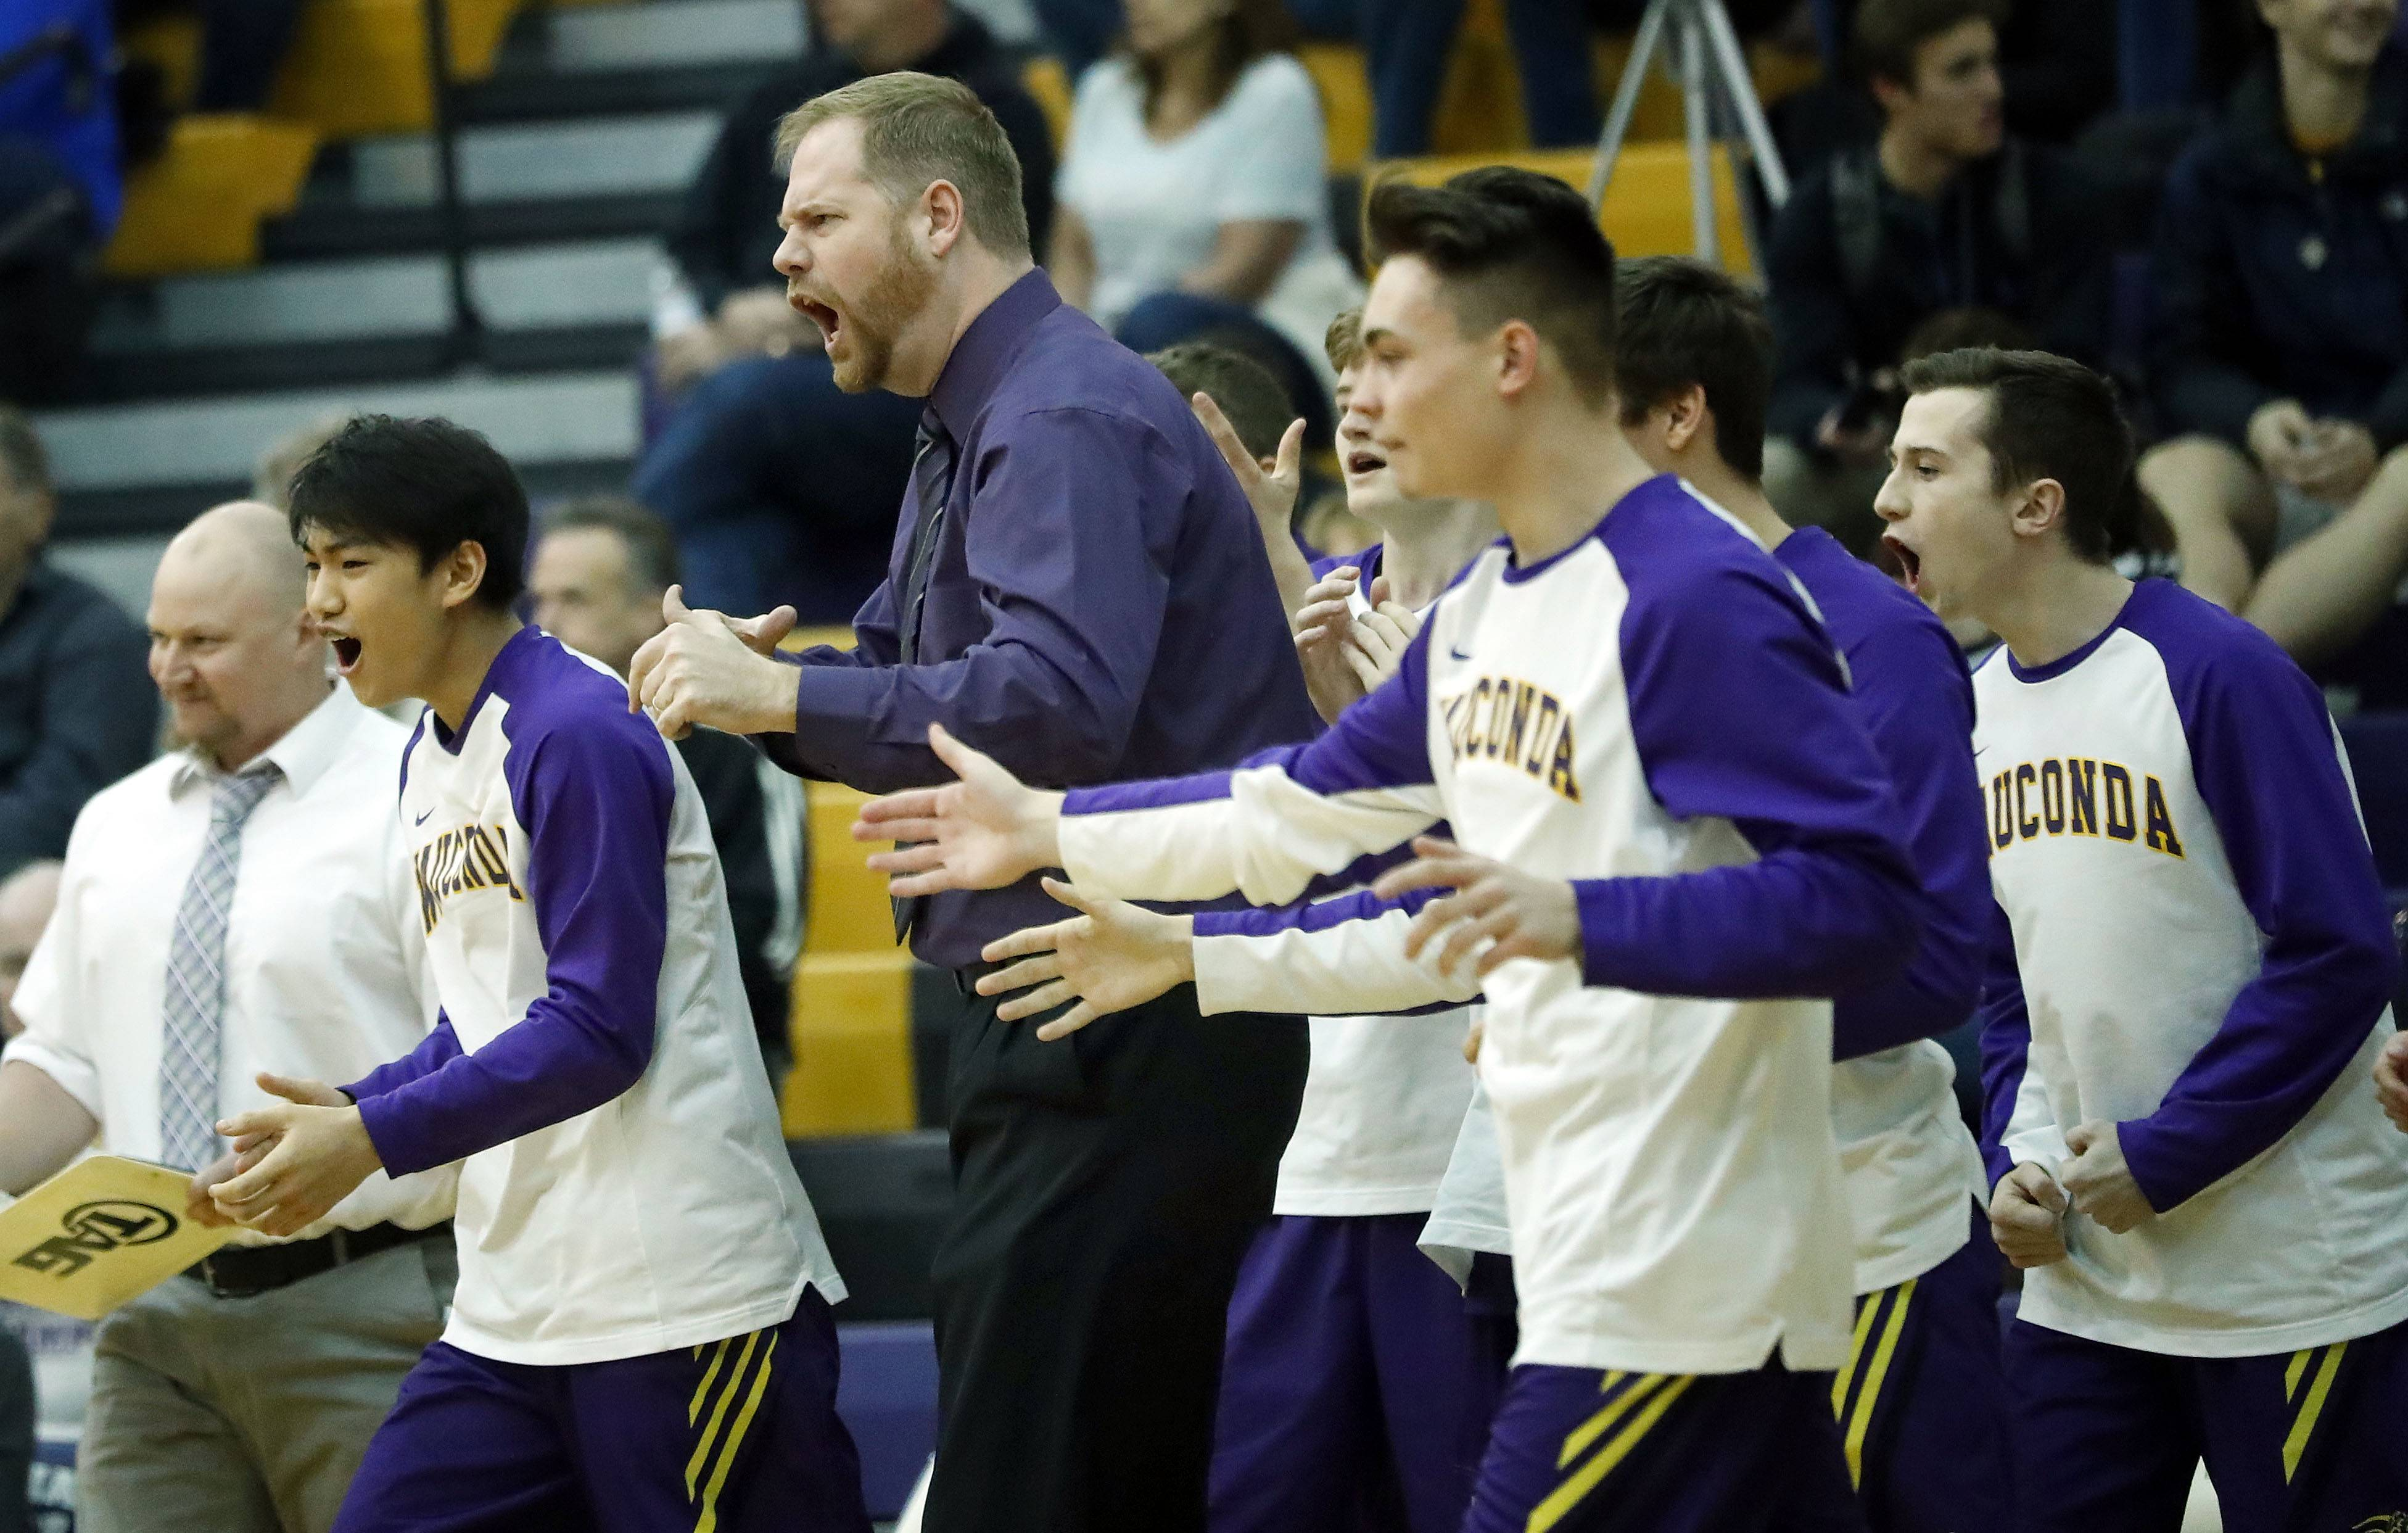 Wauconda coach Scott Luetschwager and the bench cheer on Tuesday against Lakes.